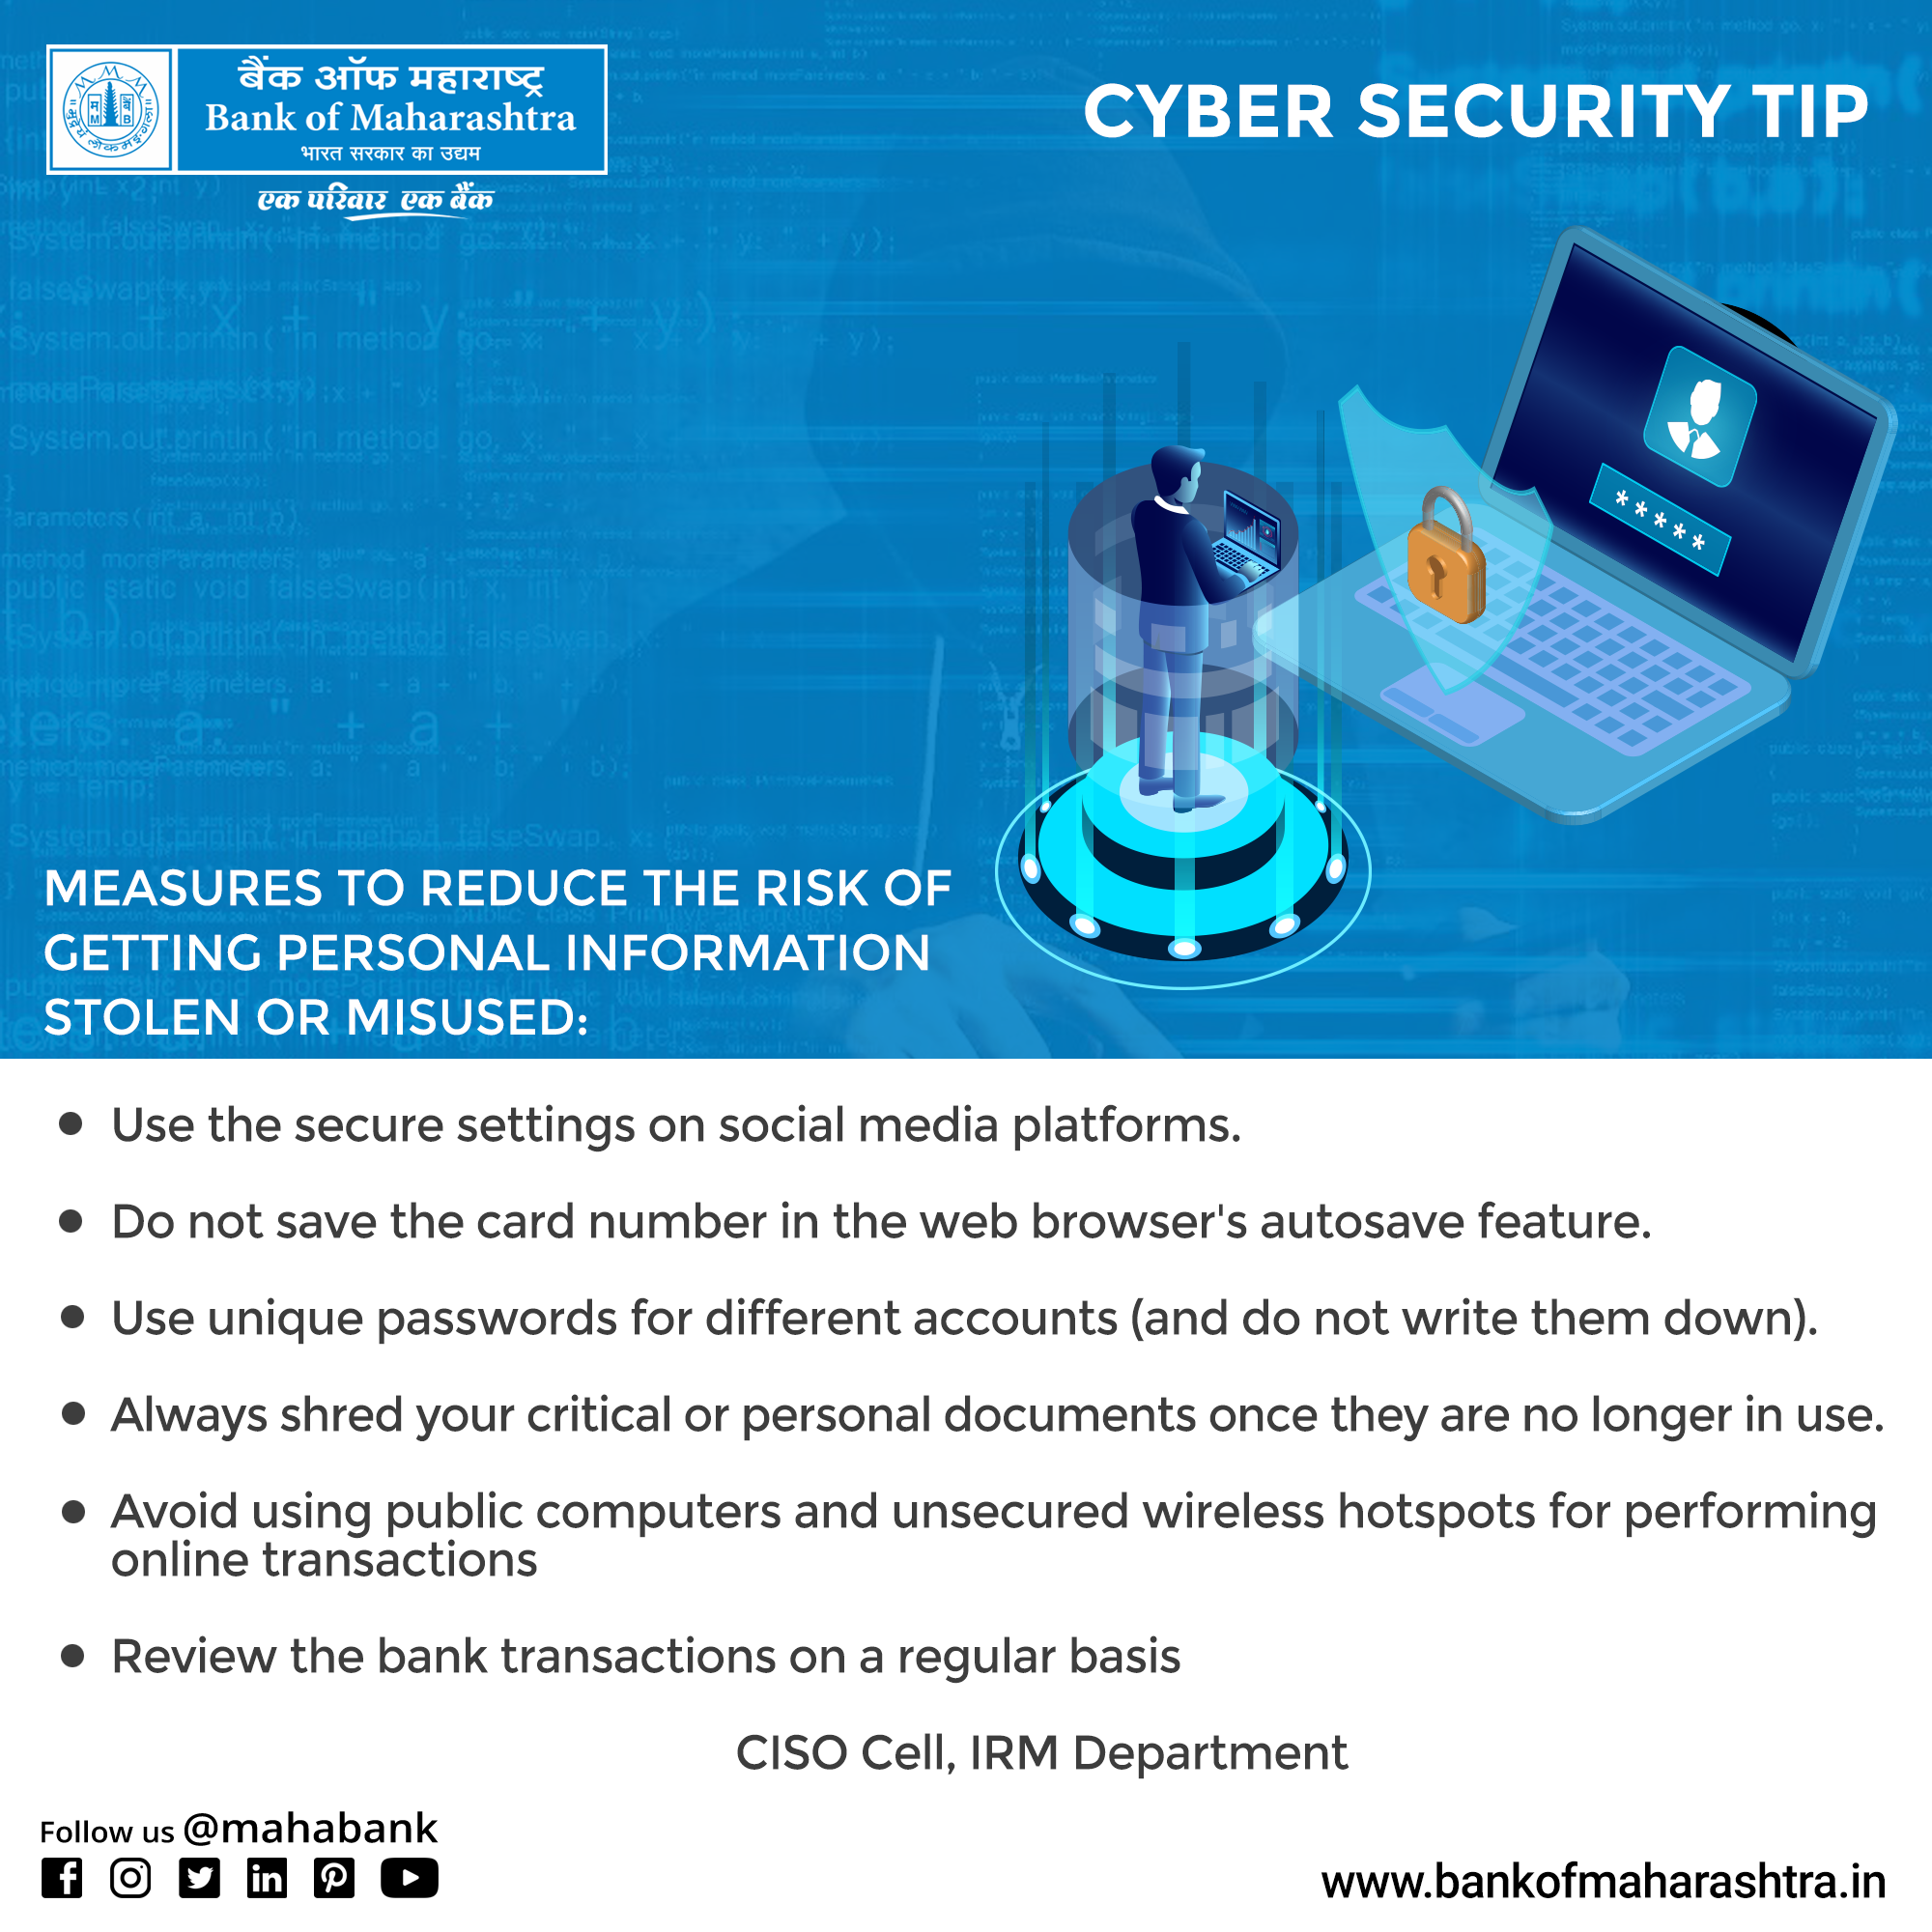 Tips To Reduce The Risk Of Getting Personal Information Stolen Or Misused Bankofmaharashtra Bom Mahabank Cybers Security Tips Cyber Security Digital India